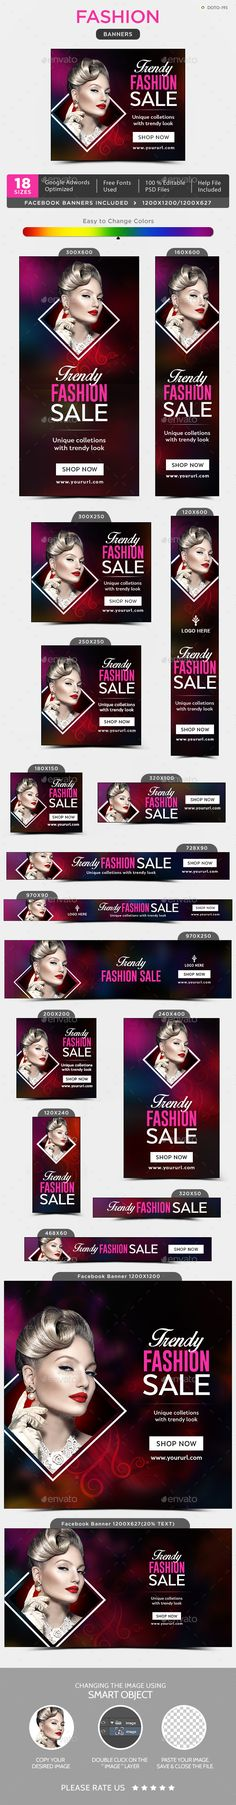 #Fashion #Banner #template - Banners & Ads Web Elements #design. download; https://graphicriver.net/item/fashion-banners/20337599?ref=yinkira